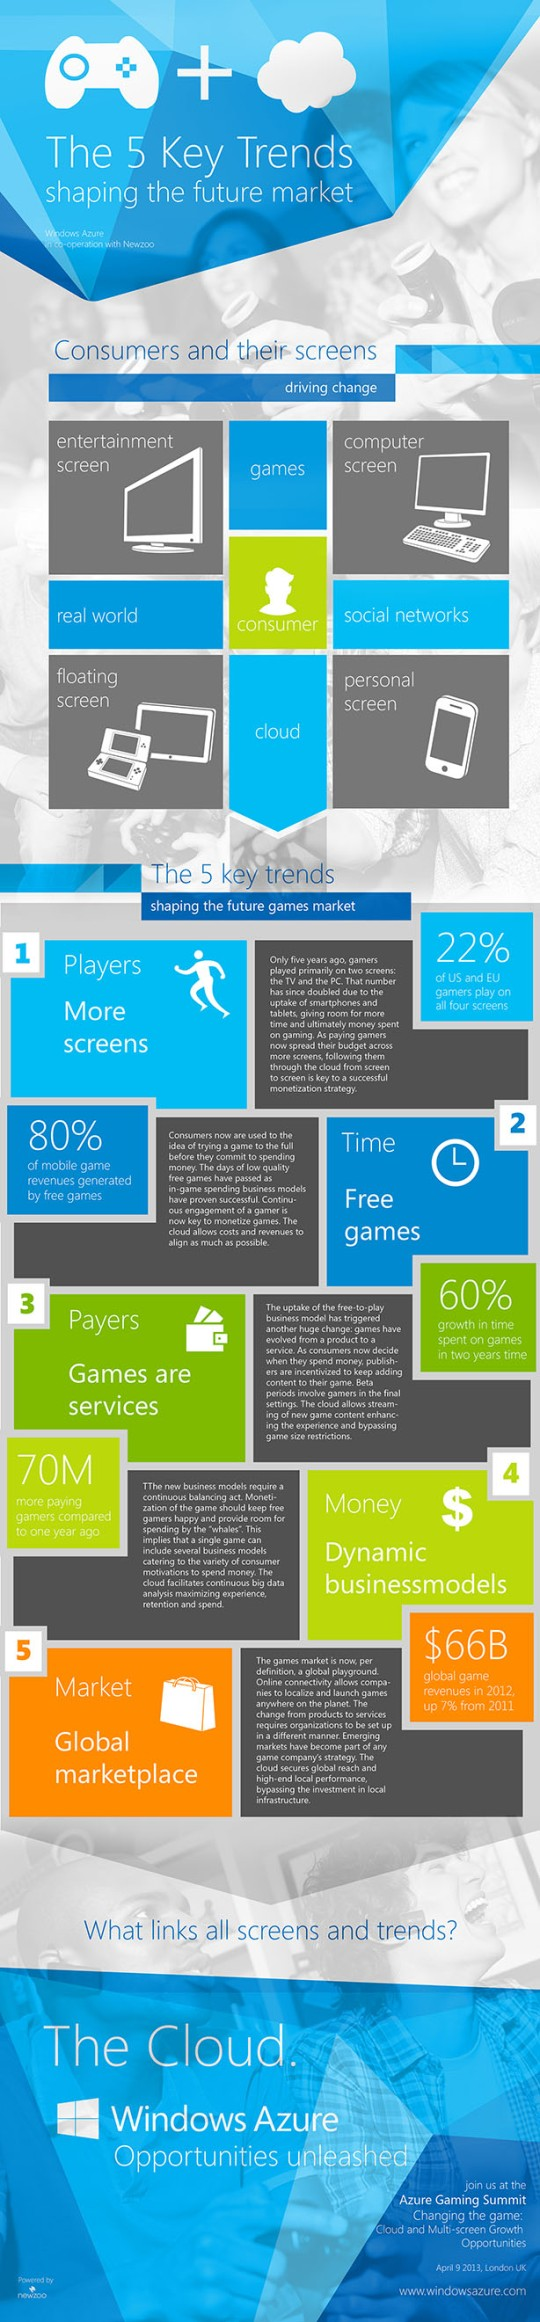 614xWindows_Azure_infographic4